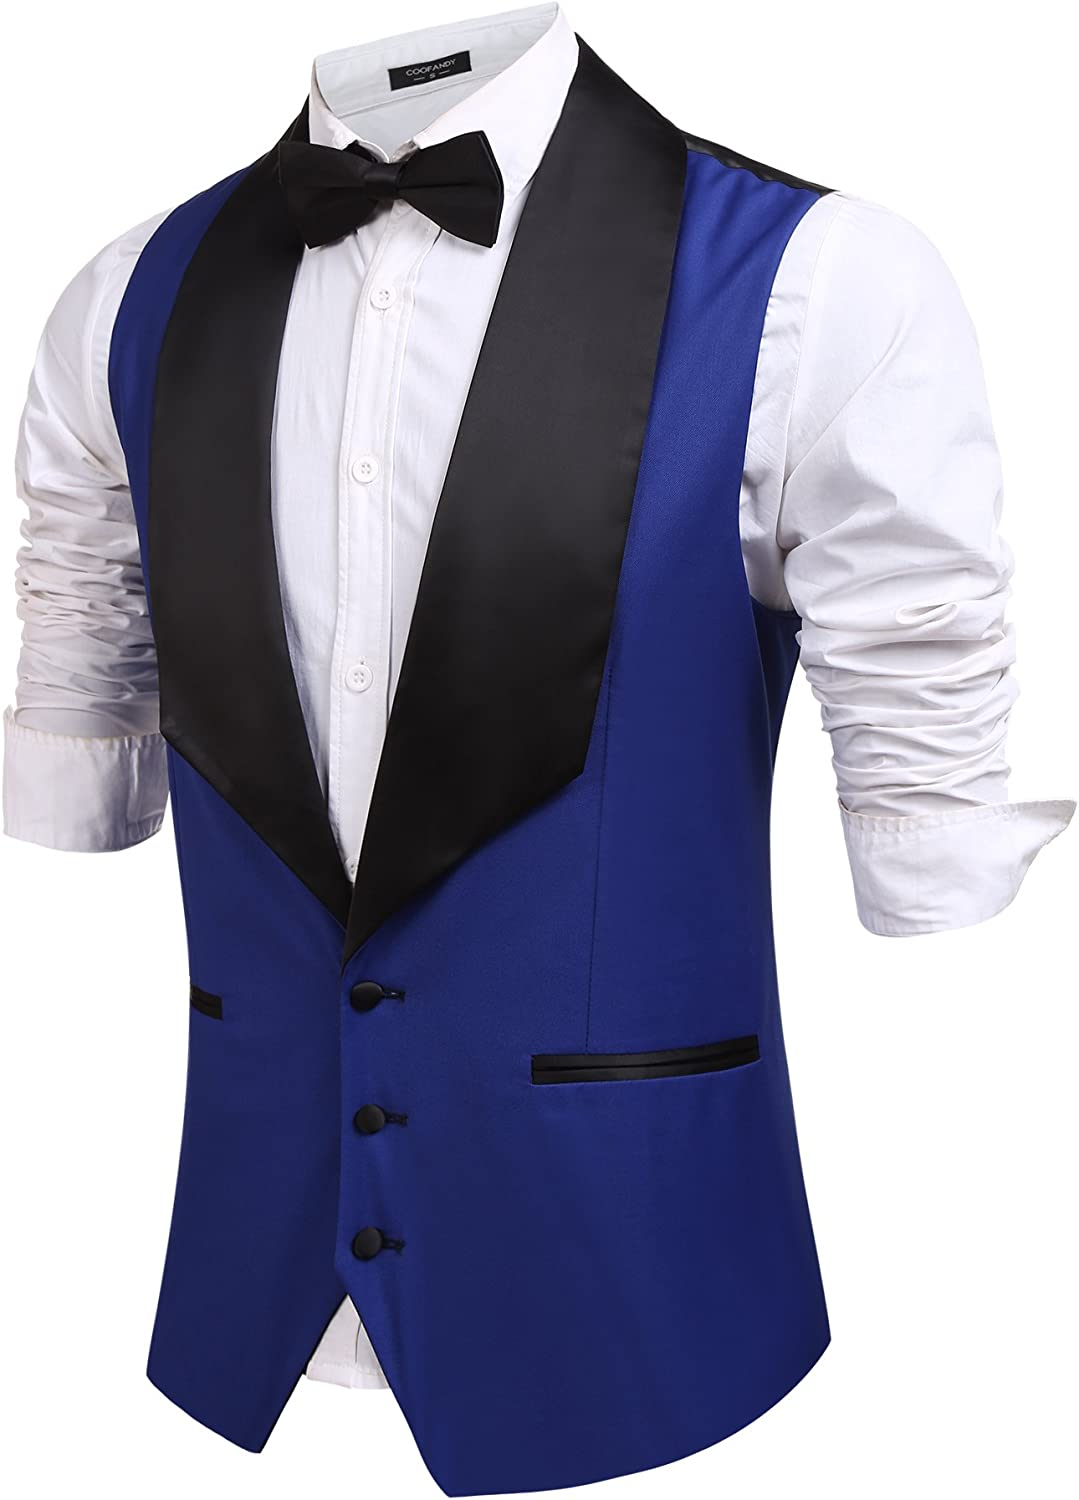 Coofandy Men's V-Neck Slim Fit Dress Suit Sleeveless Vest Waistcoat